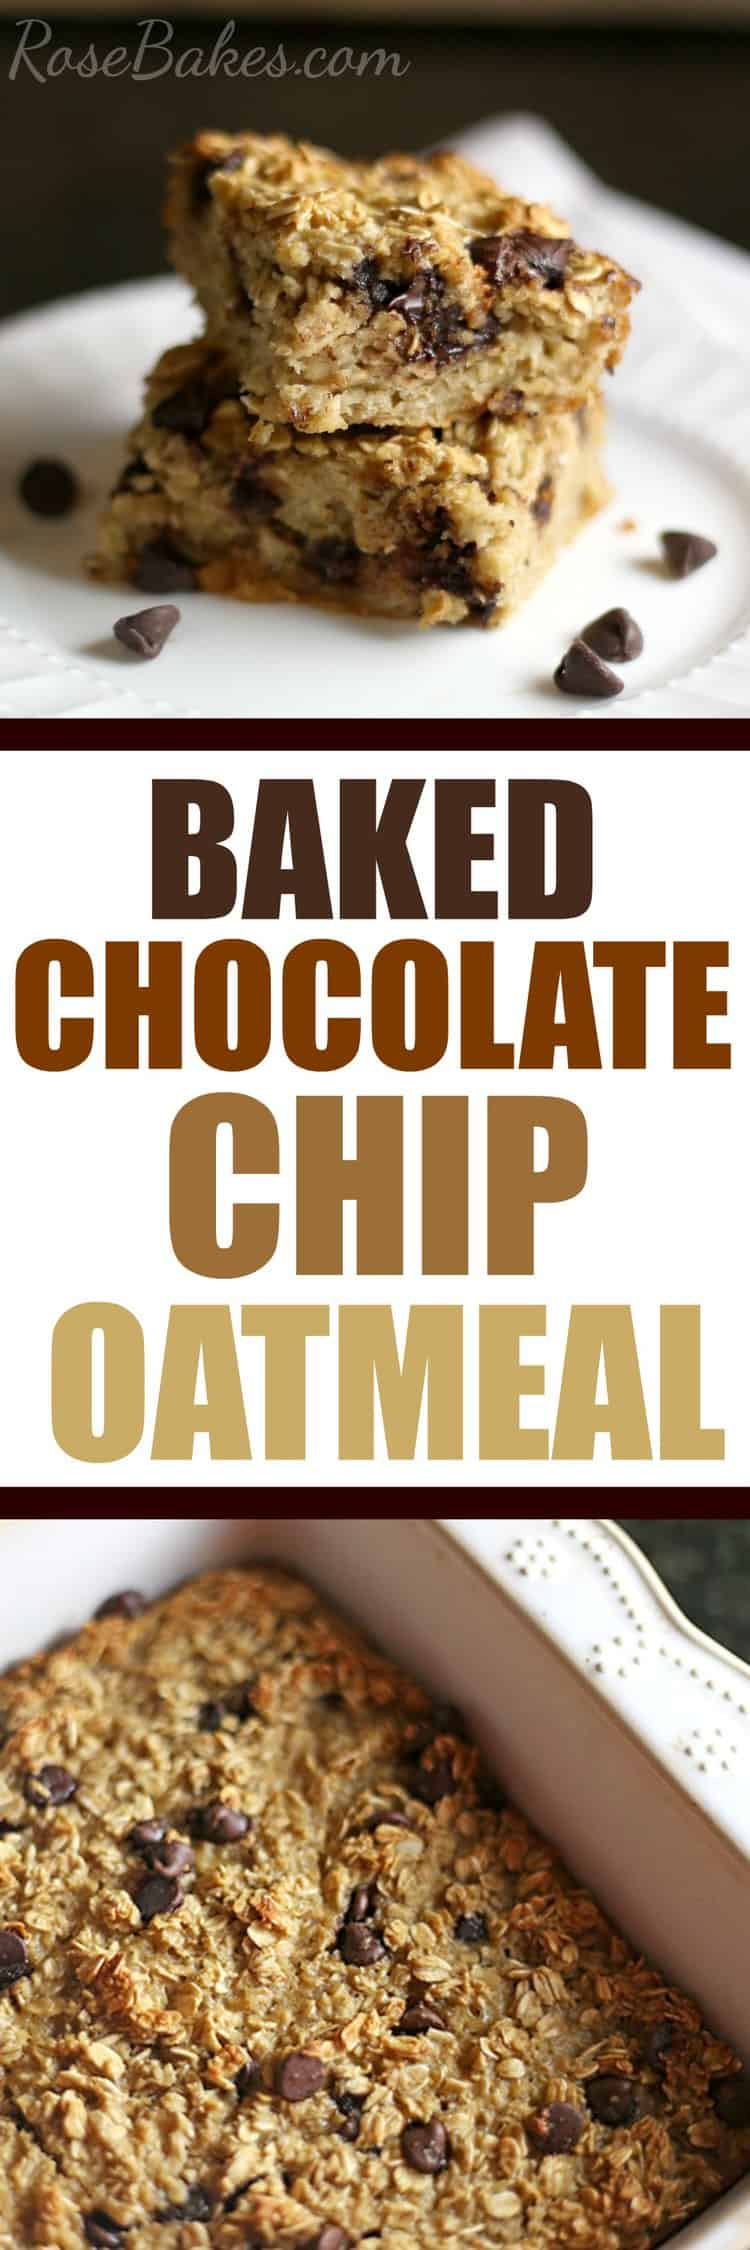 baked-chocolate-chip-oatmeal-by-rosebakes-ic-oatober-ad